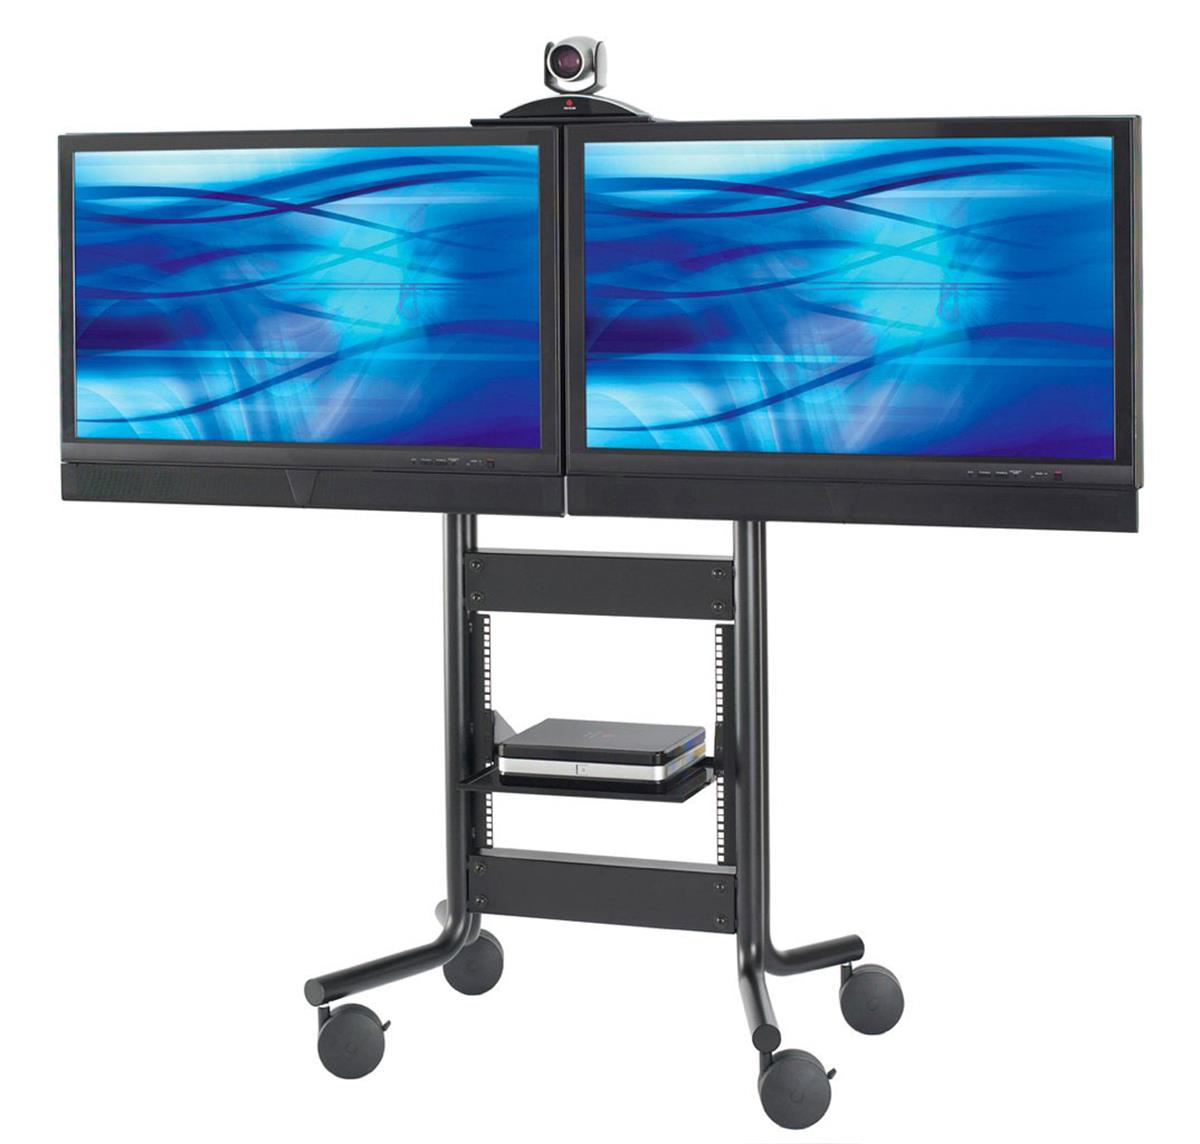 These Rolling Lcd Monitor Stands Feature An Adjustable